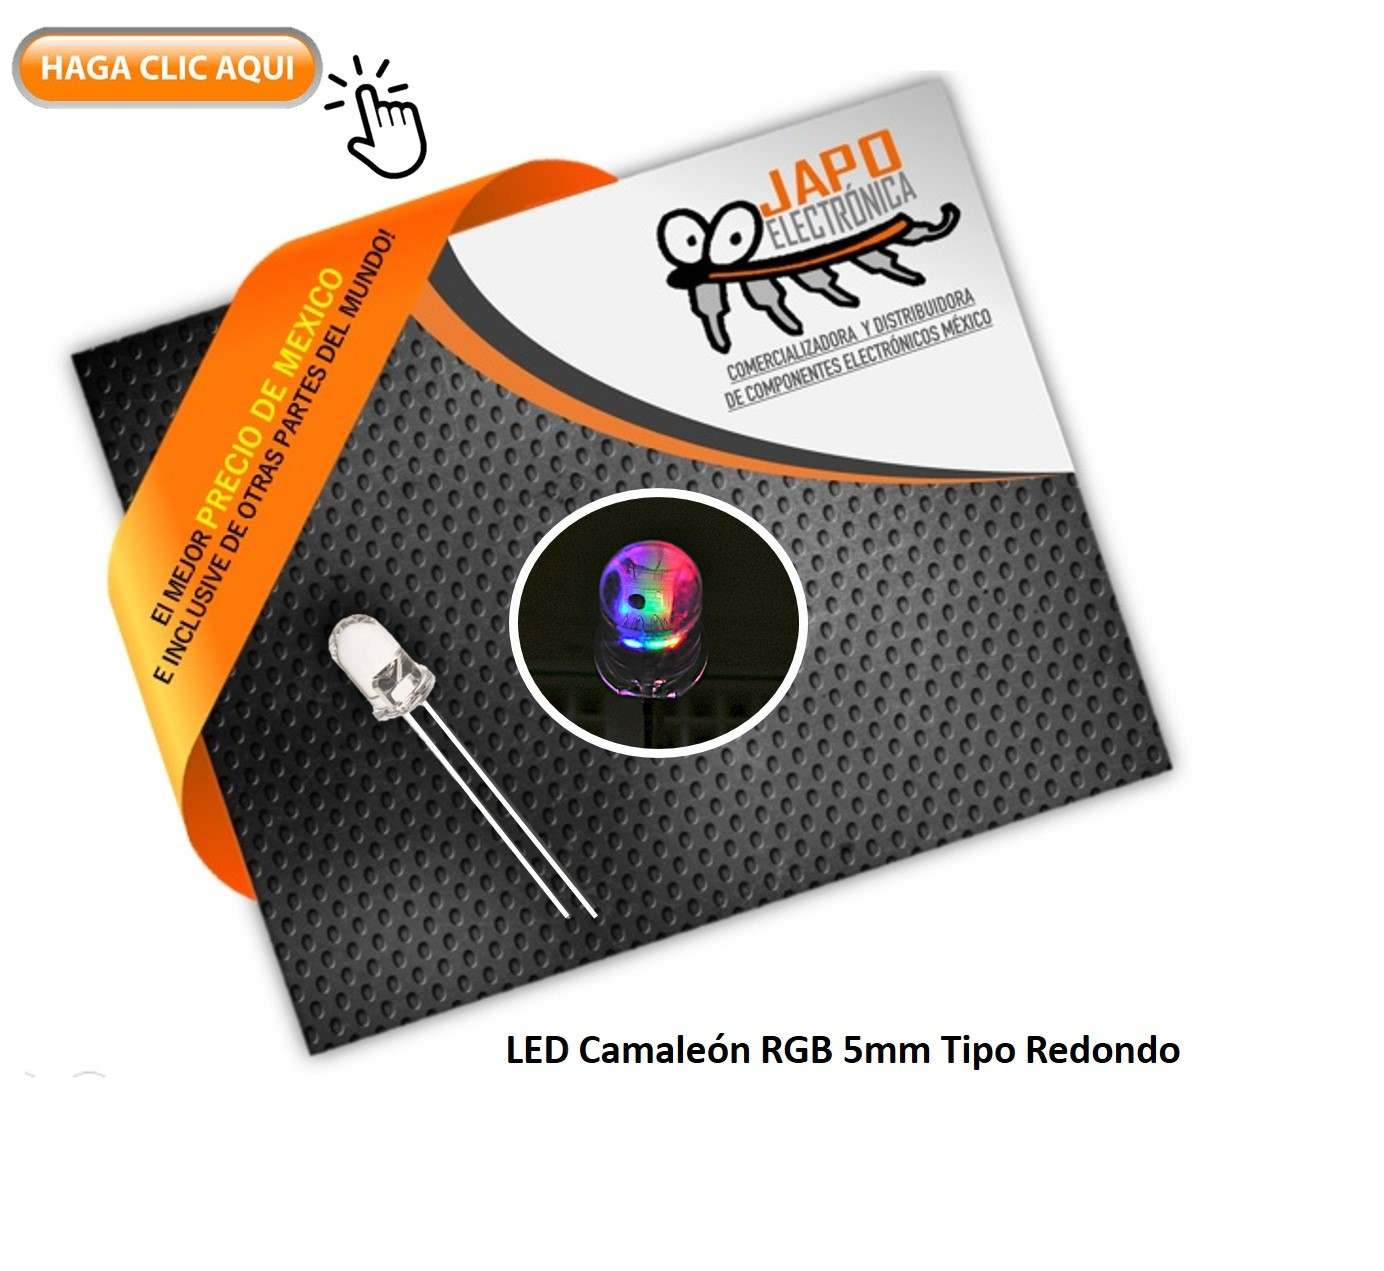 Led Camaleón RGB 5mm Tipo Redondo